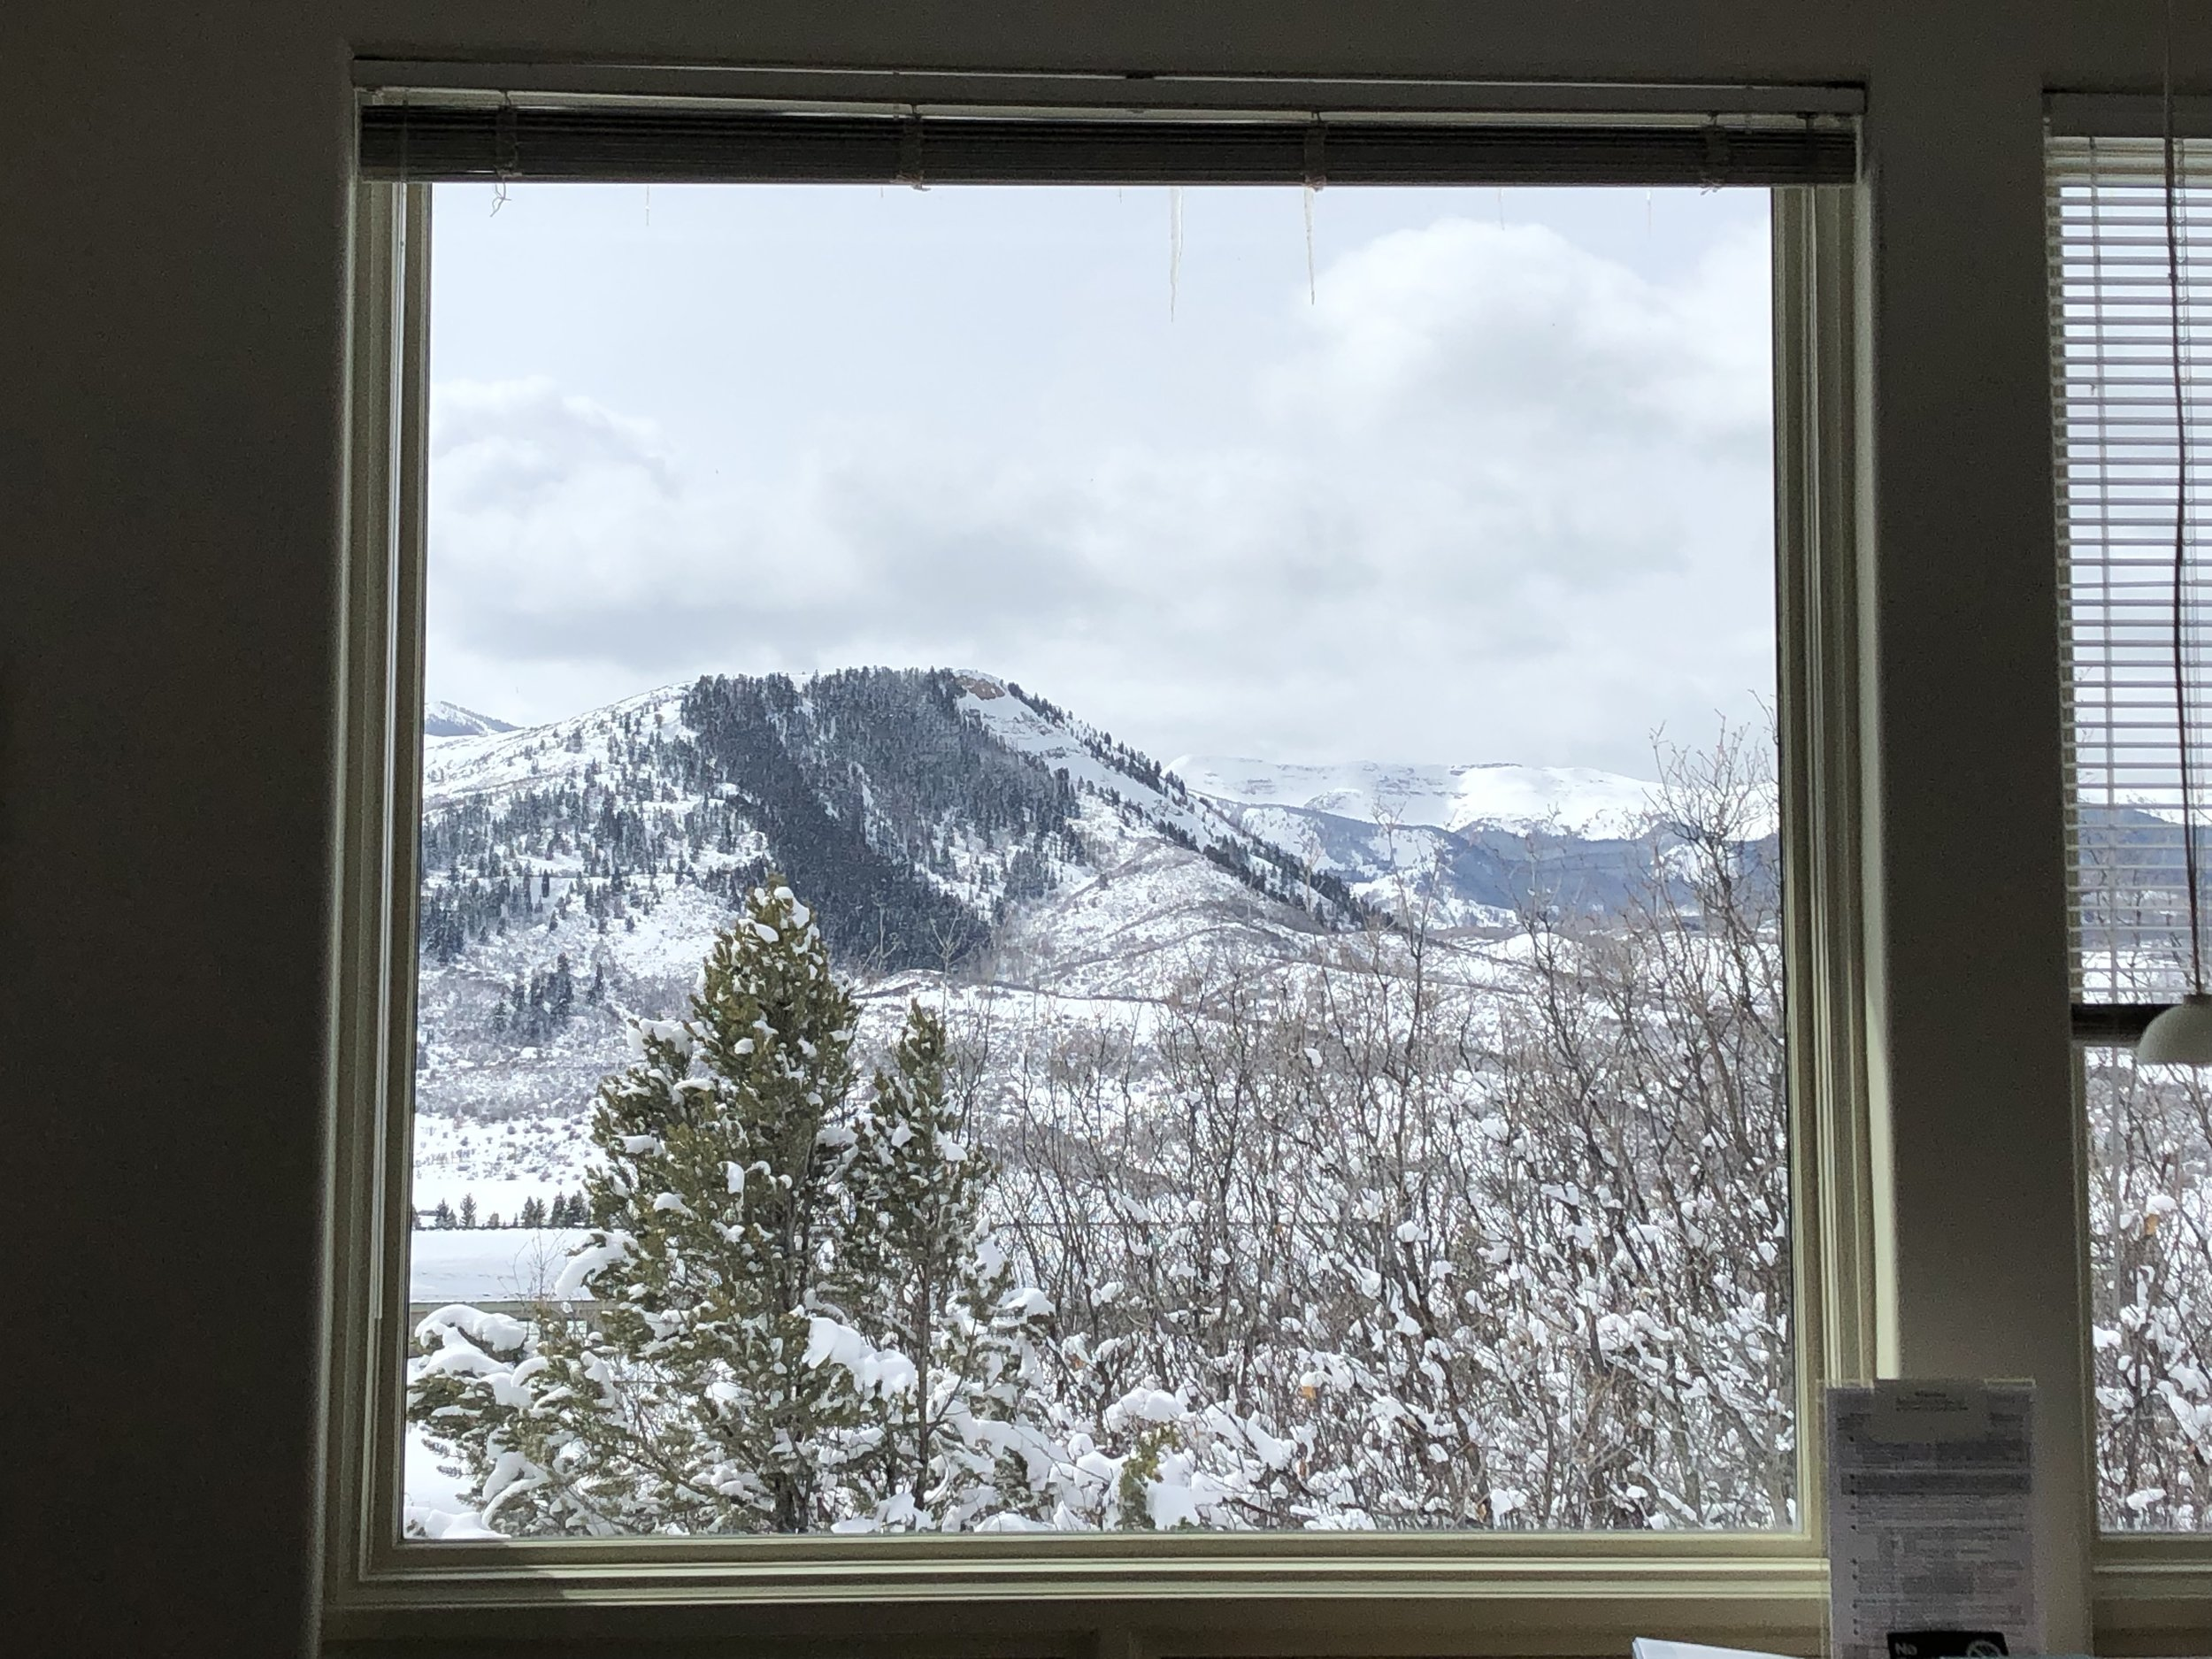 The view from my hermitage window